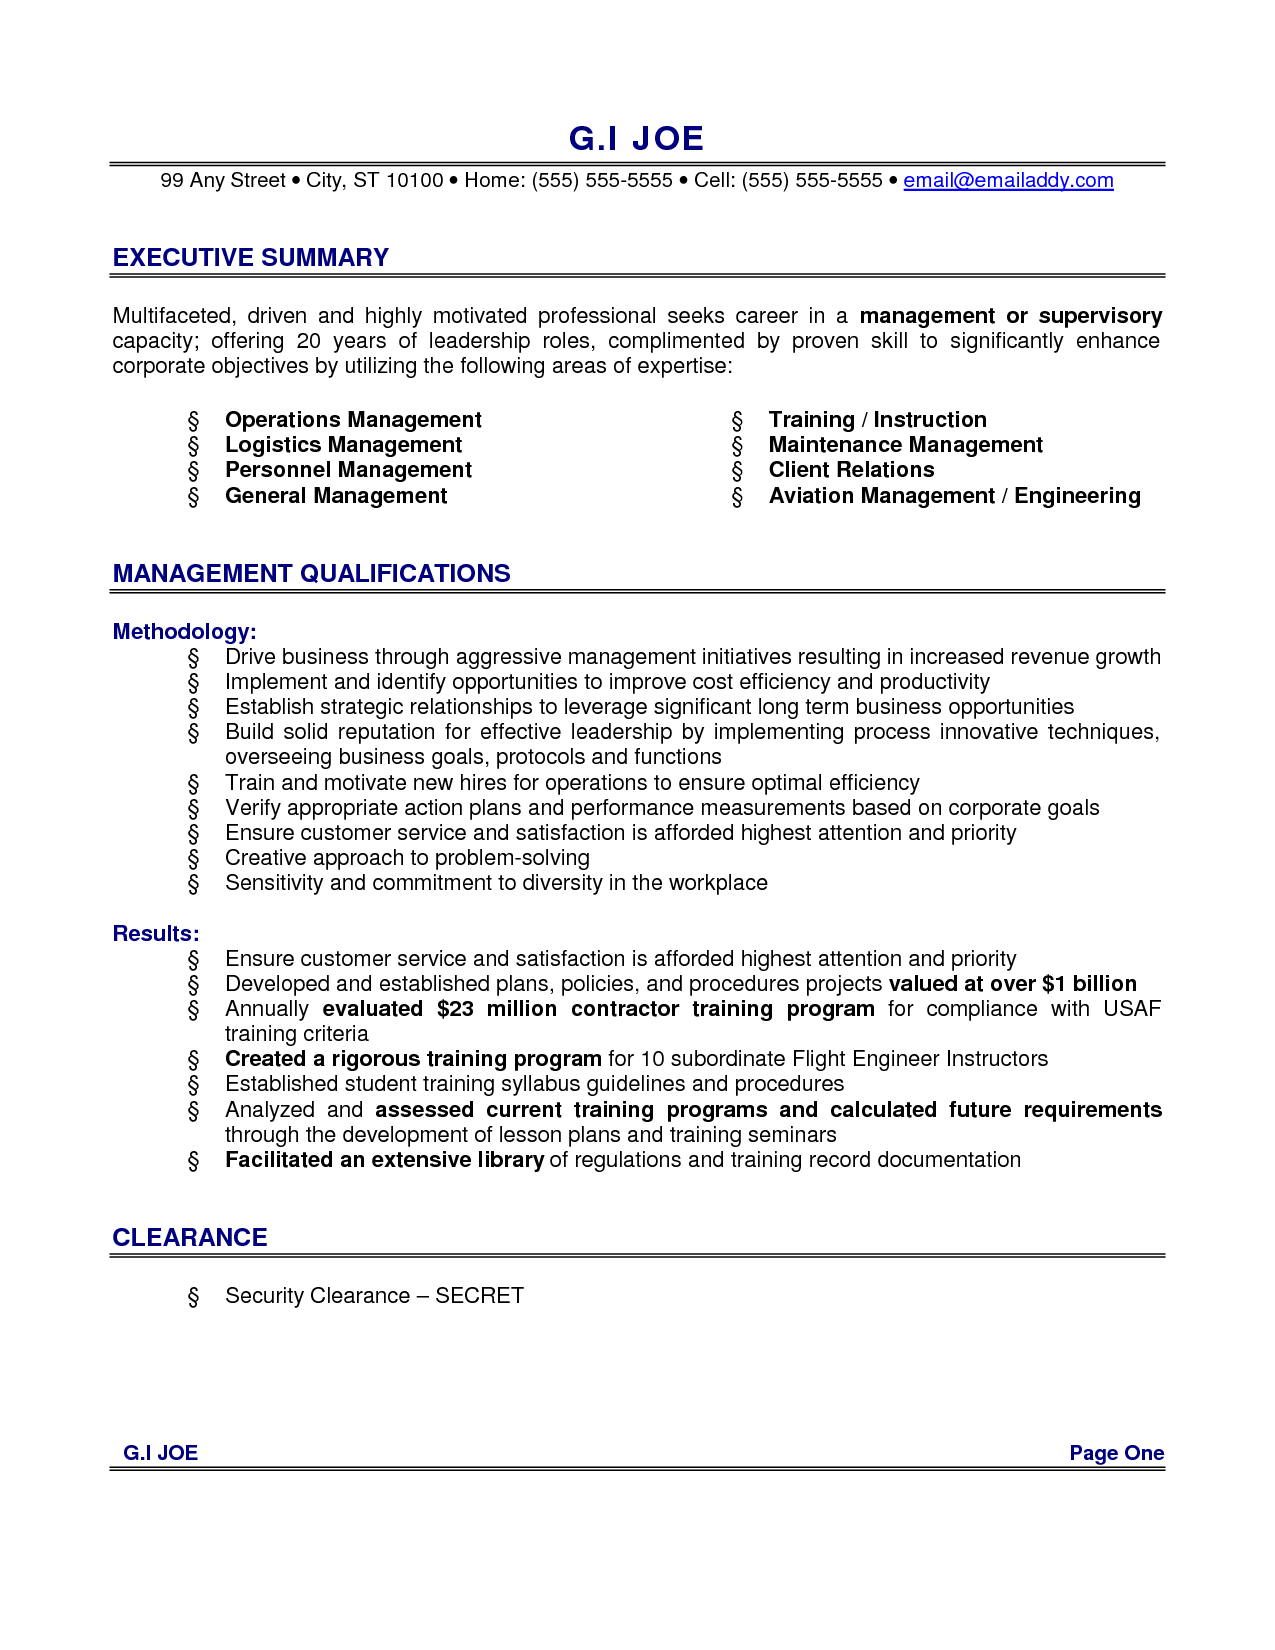 resume example executive summary with management